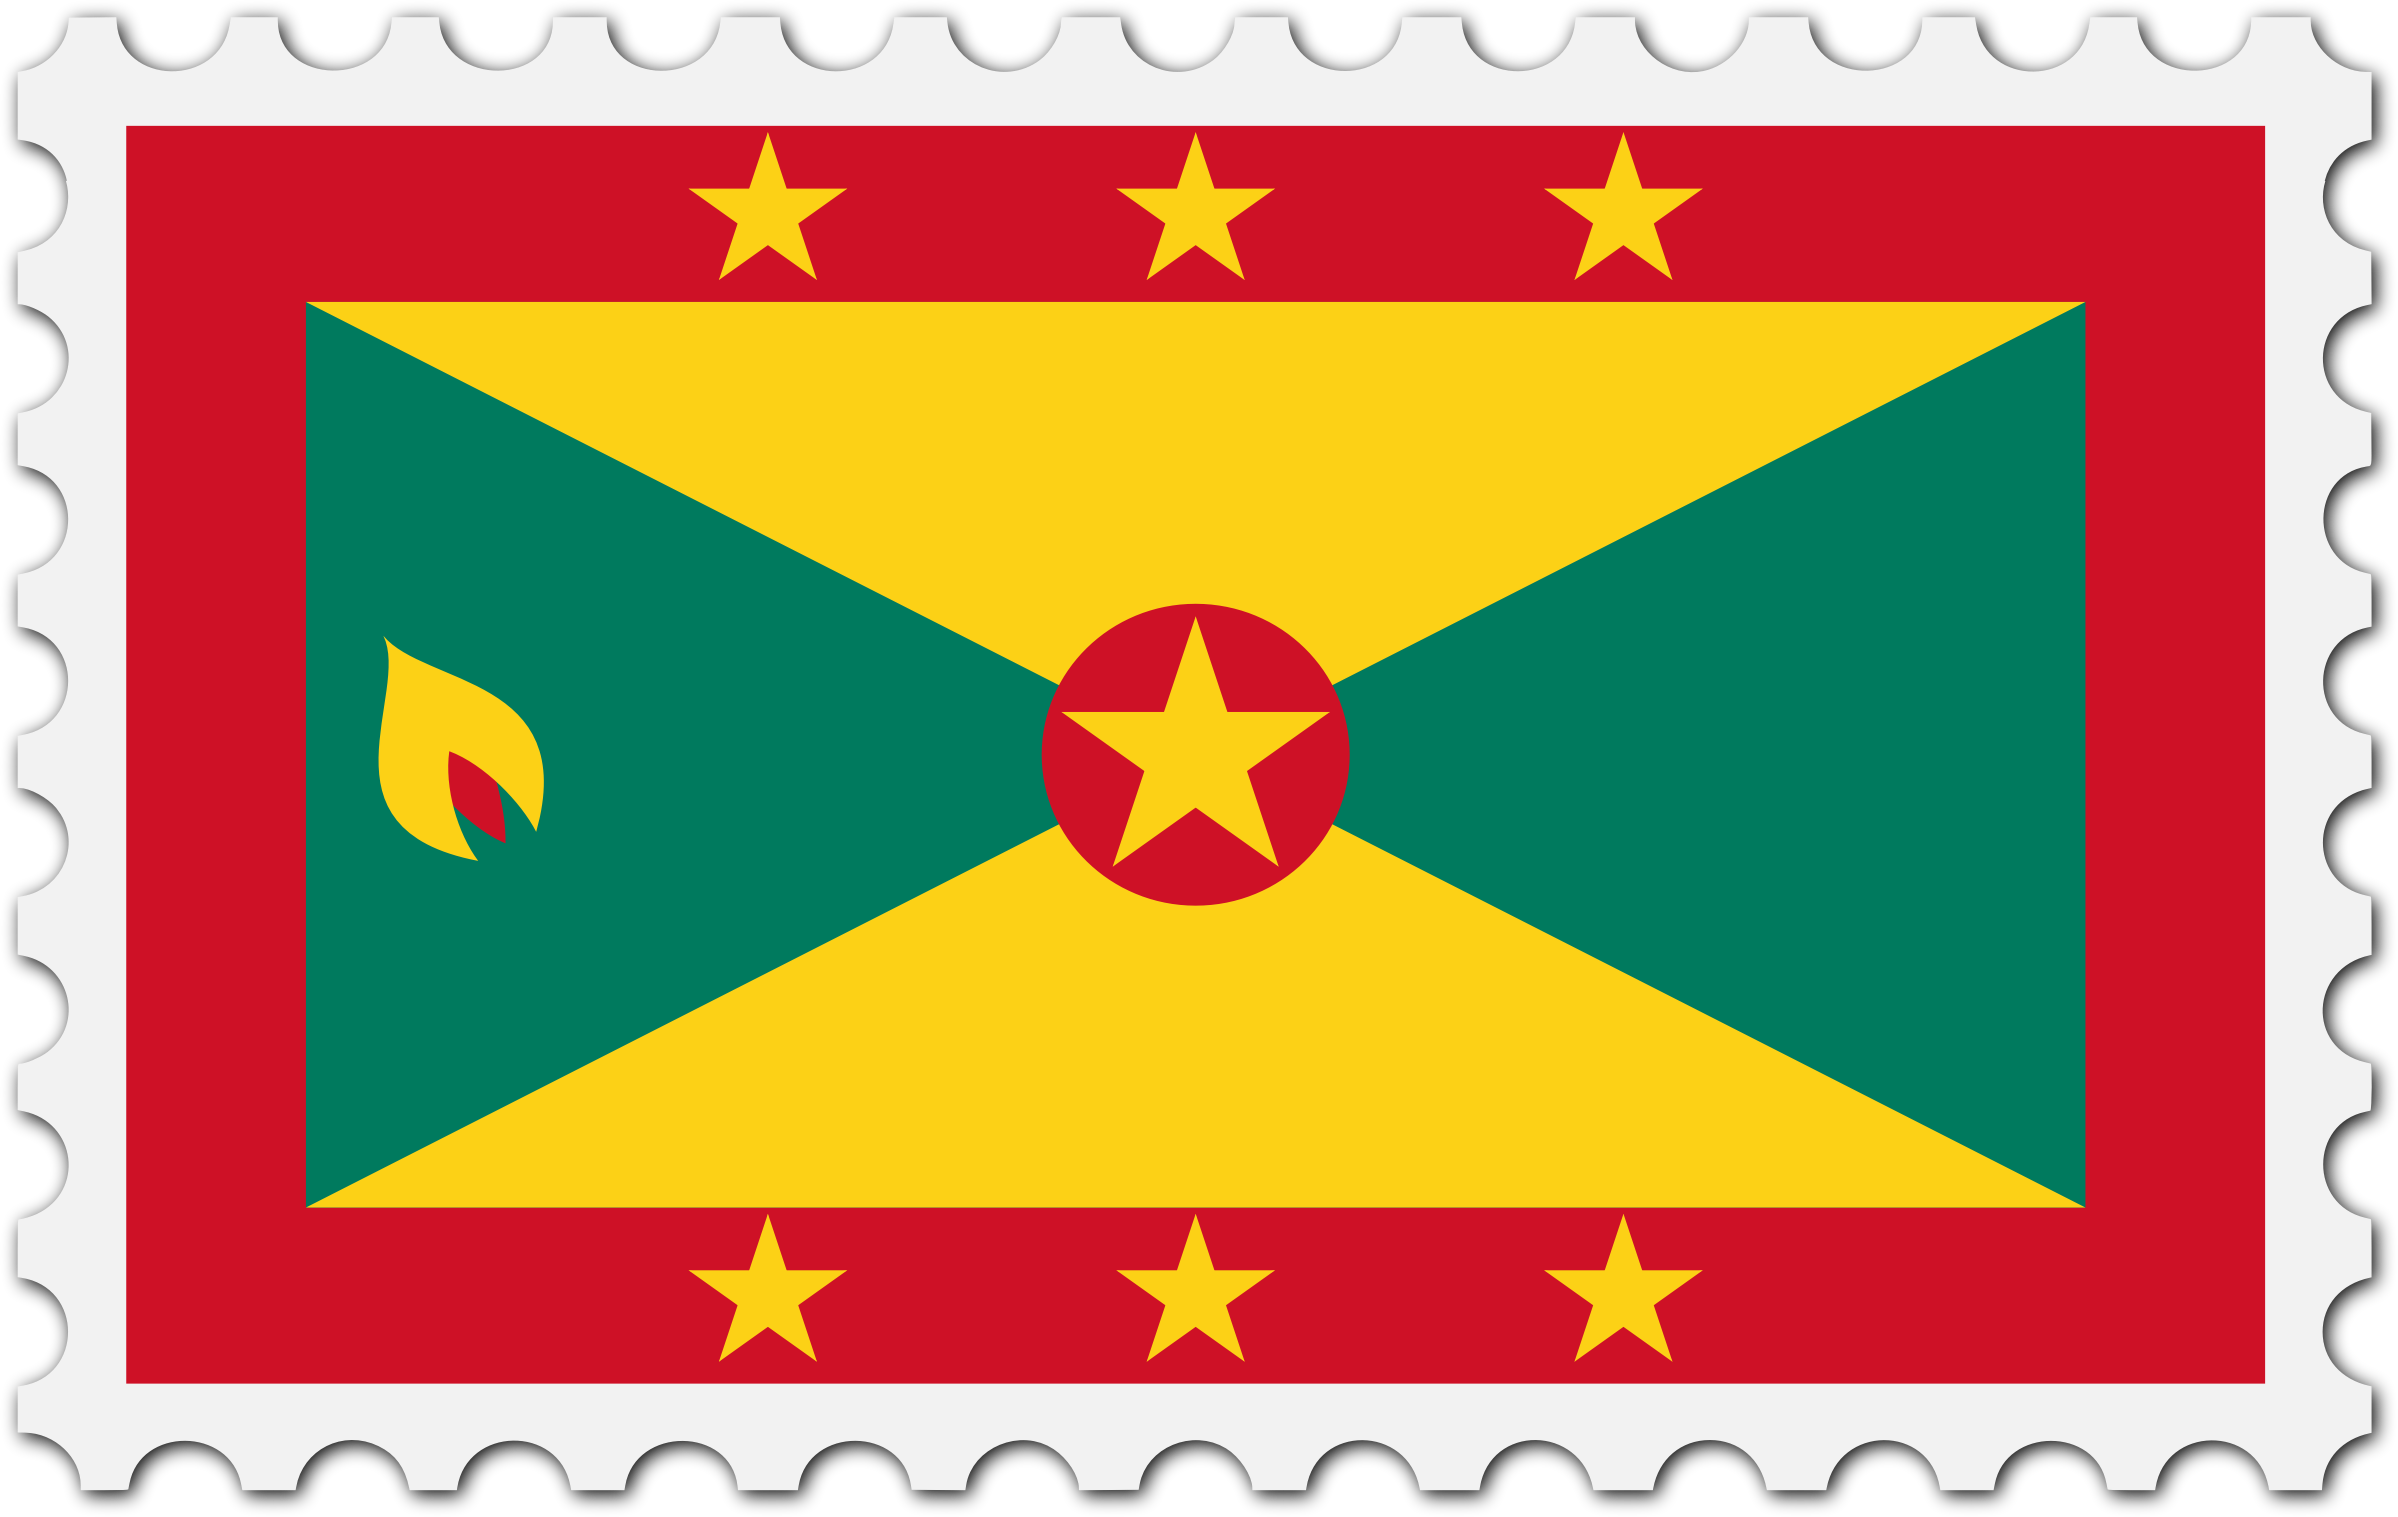 Grenada flag stamp by Firkin